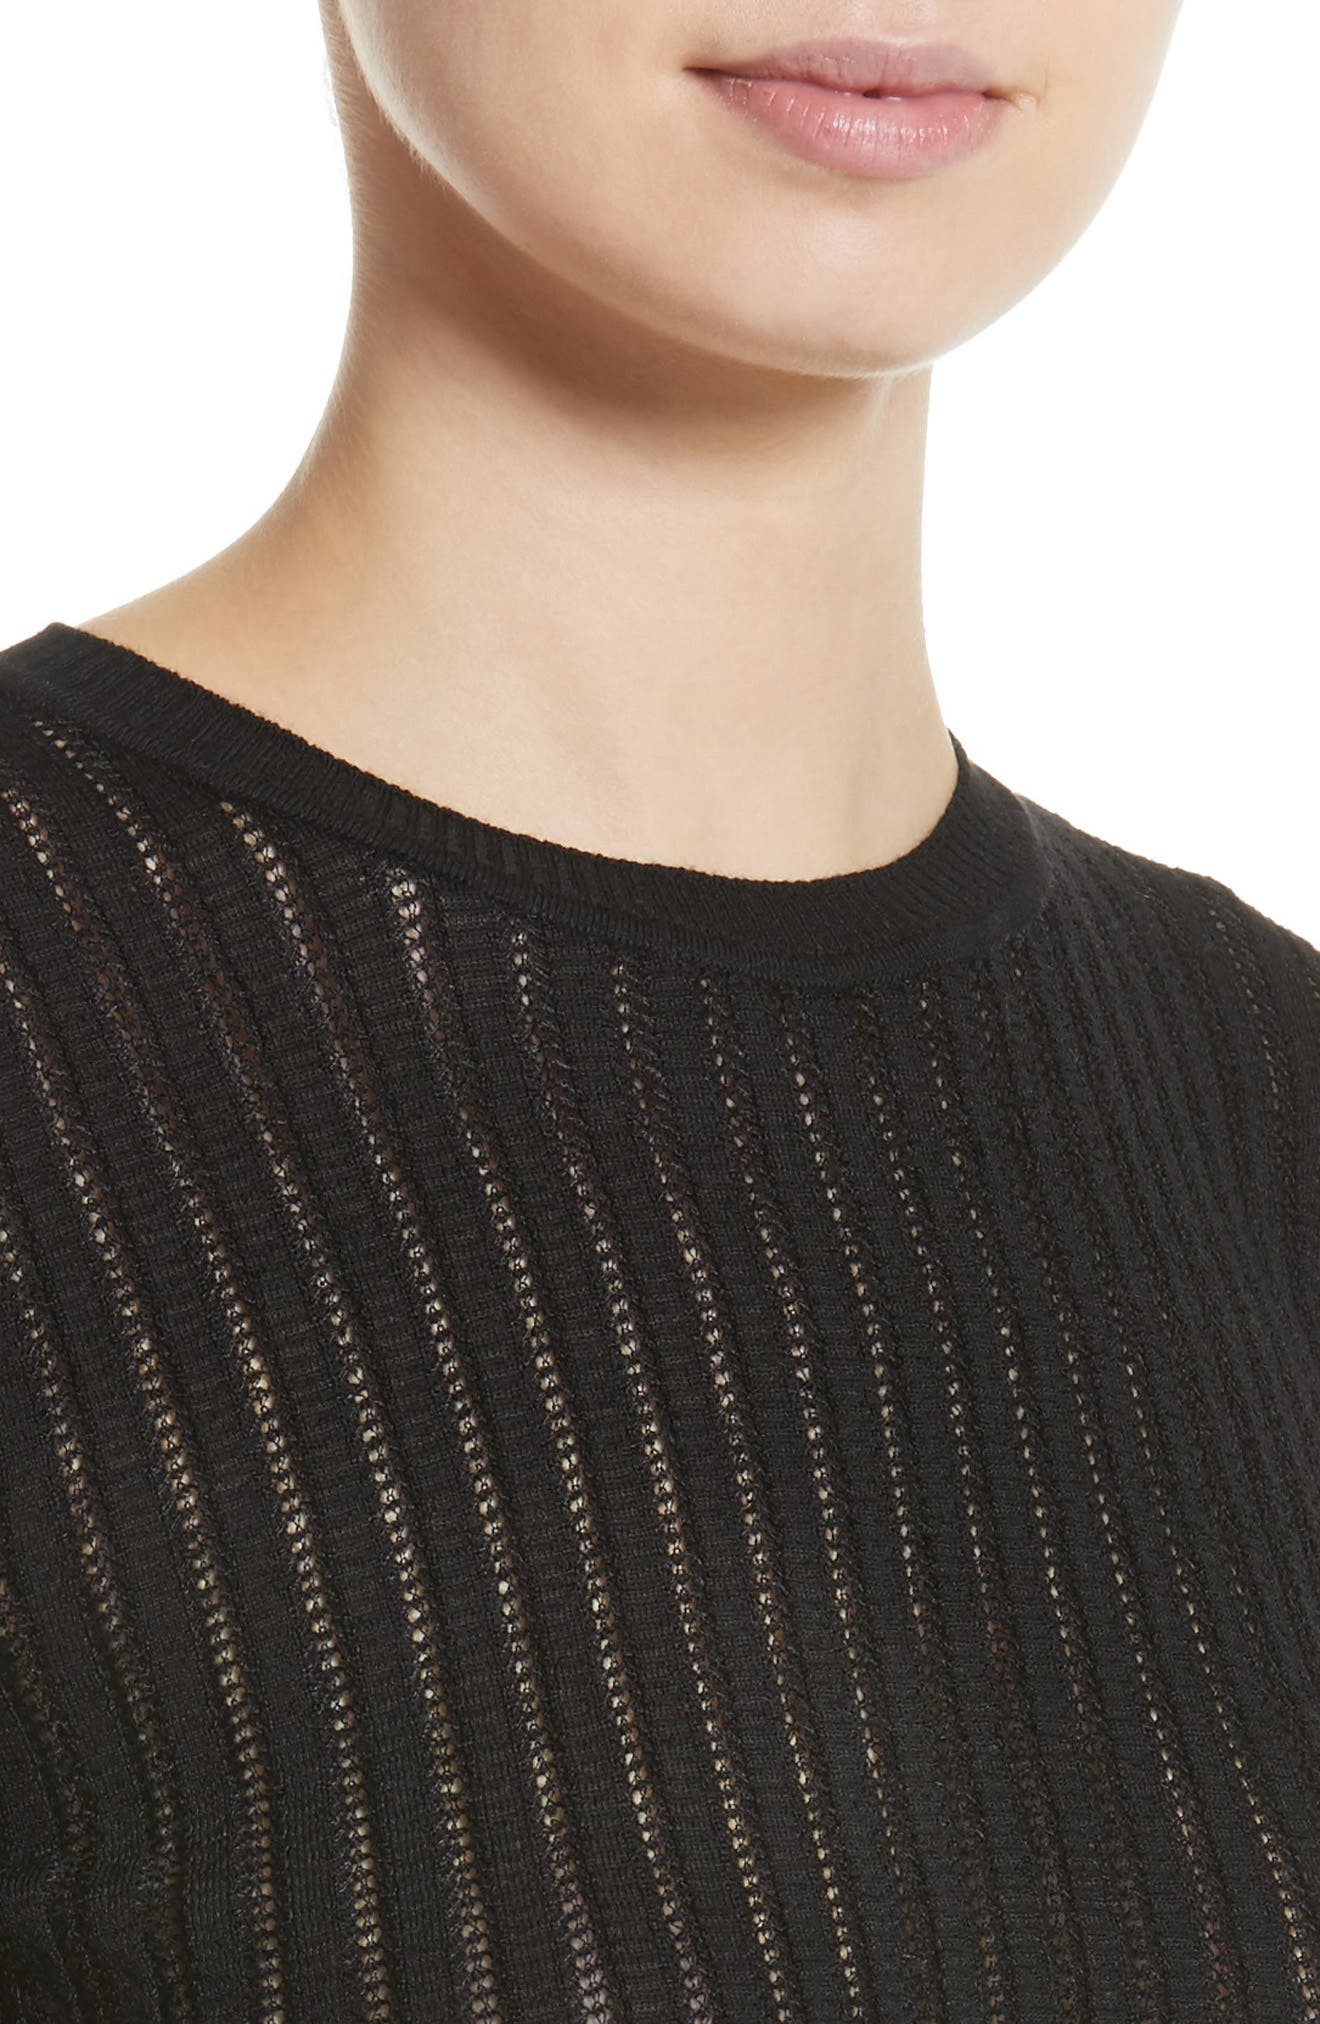 Knit Wool Blend Sweater,                             Alternate thumbnail 4, color,                             001